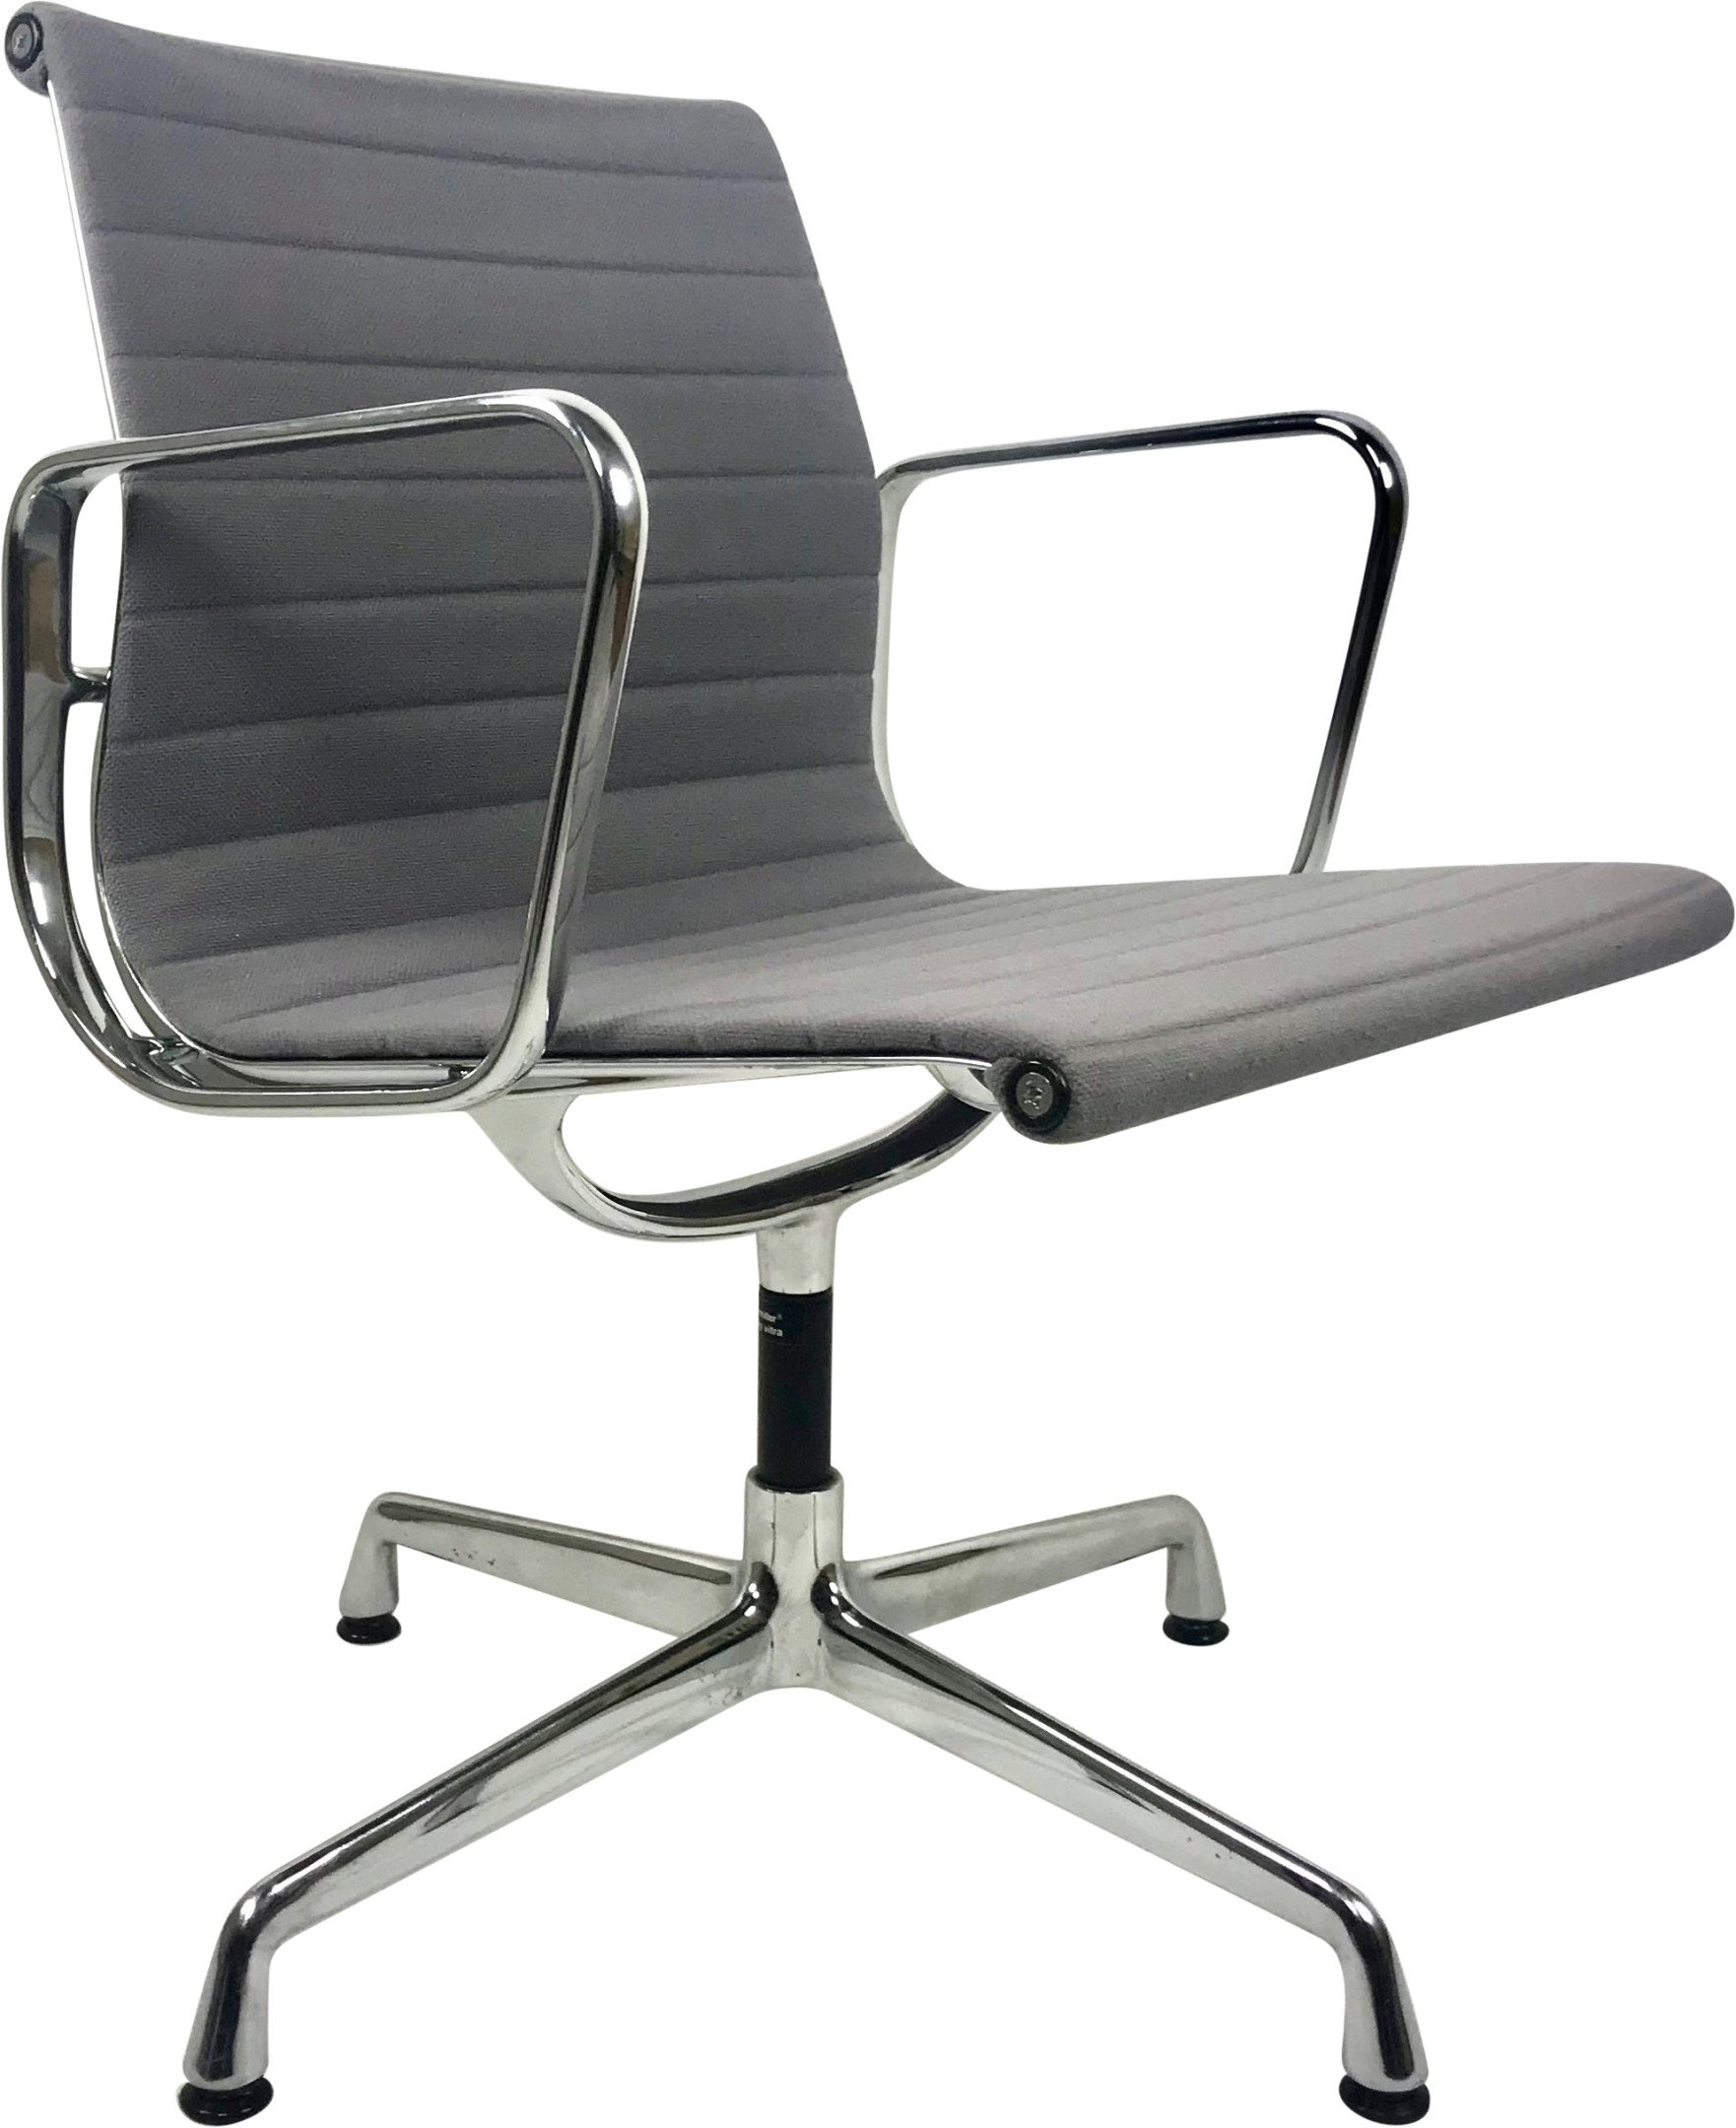 EA 108 Office Chair by Ch.& R. Eams for Vitra, Swiss, 1980s